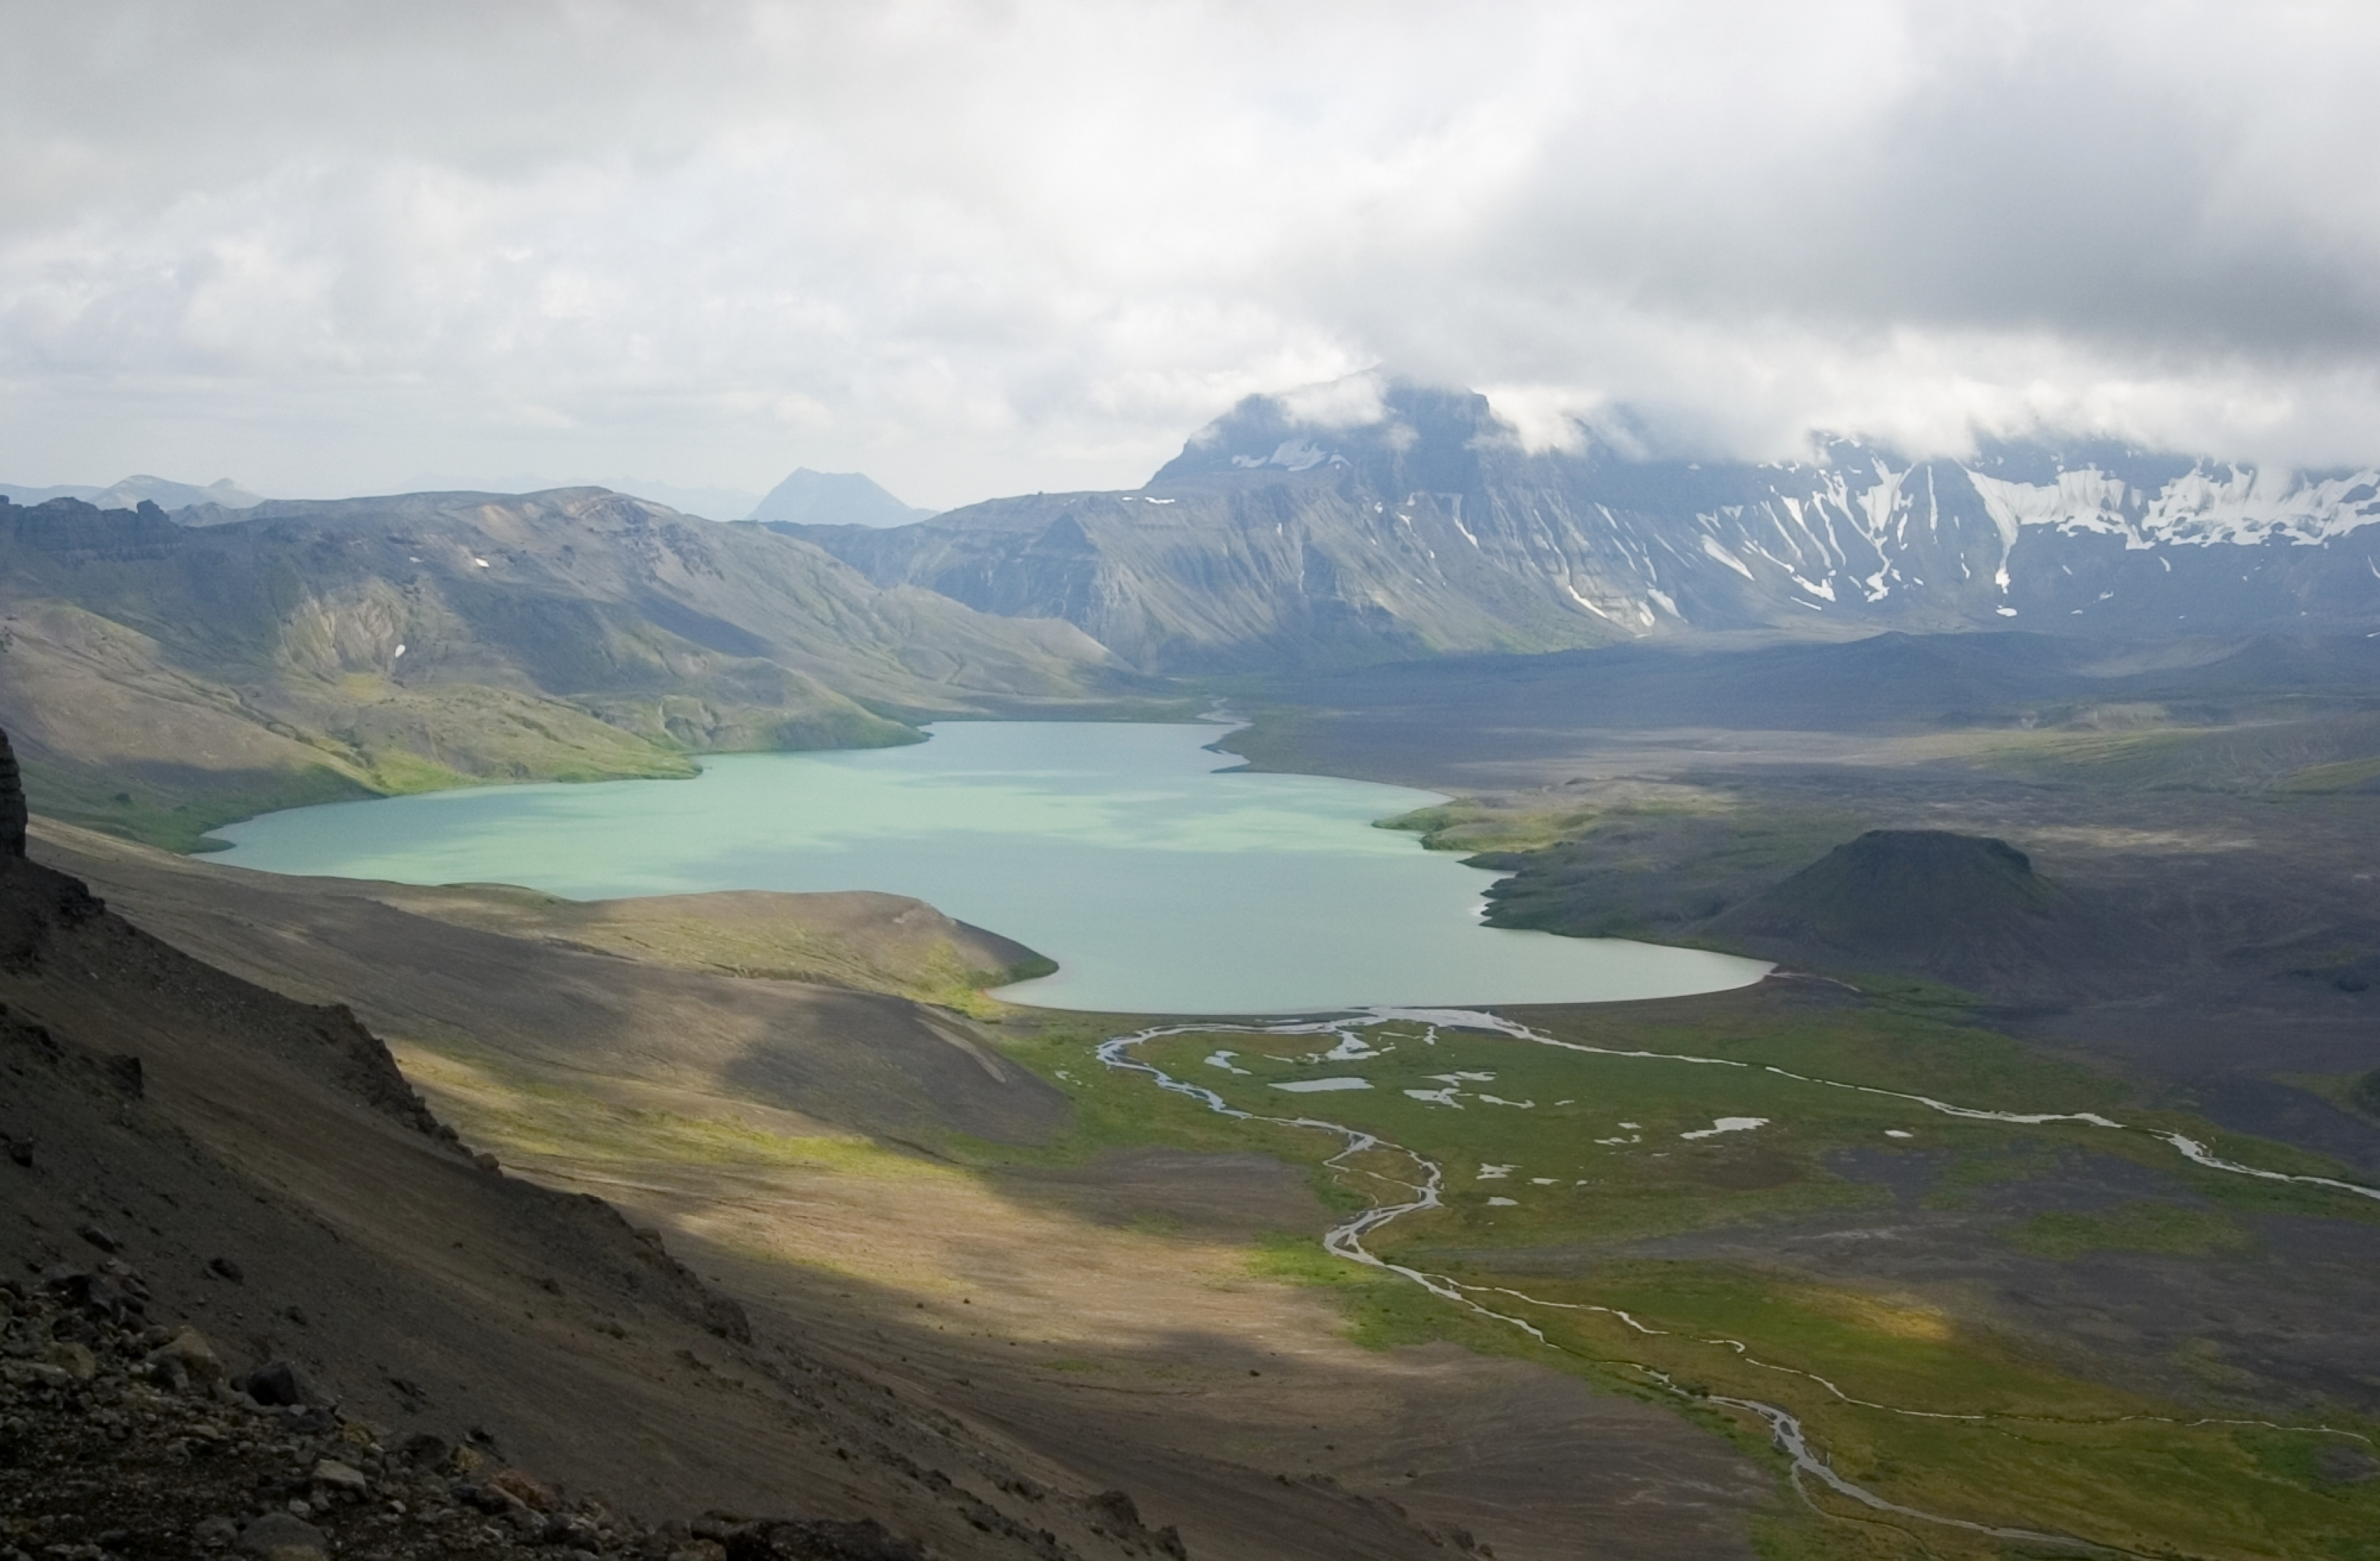 Aerial view of Surprise Lake from Rim at Aniakchak National Monument & Preserve